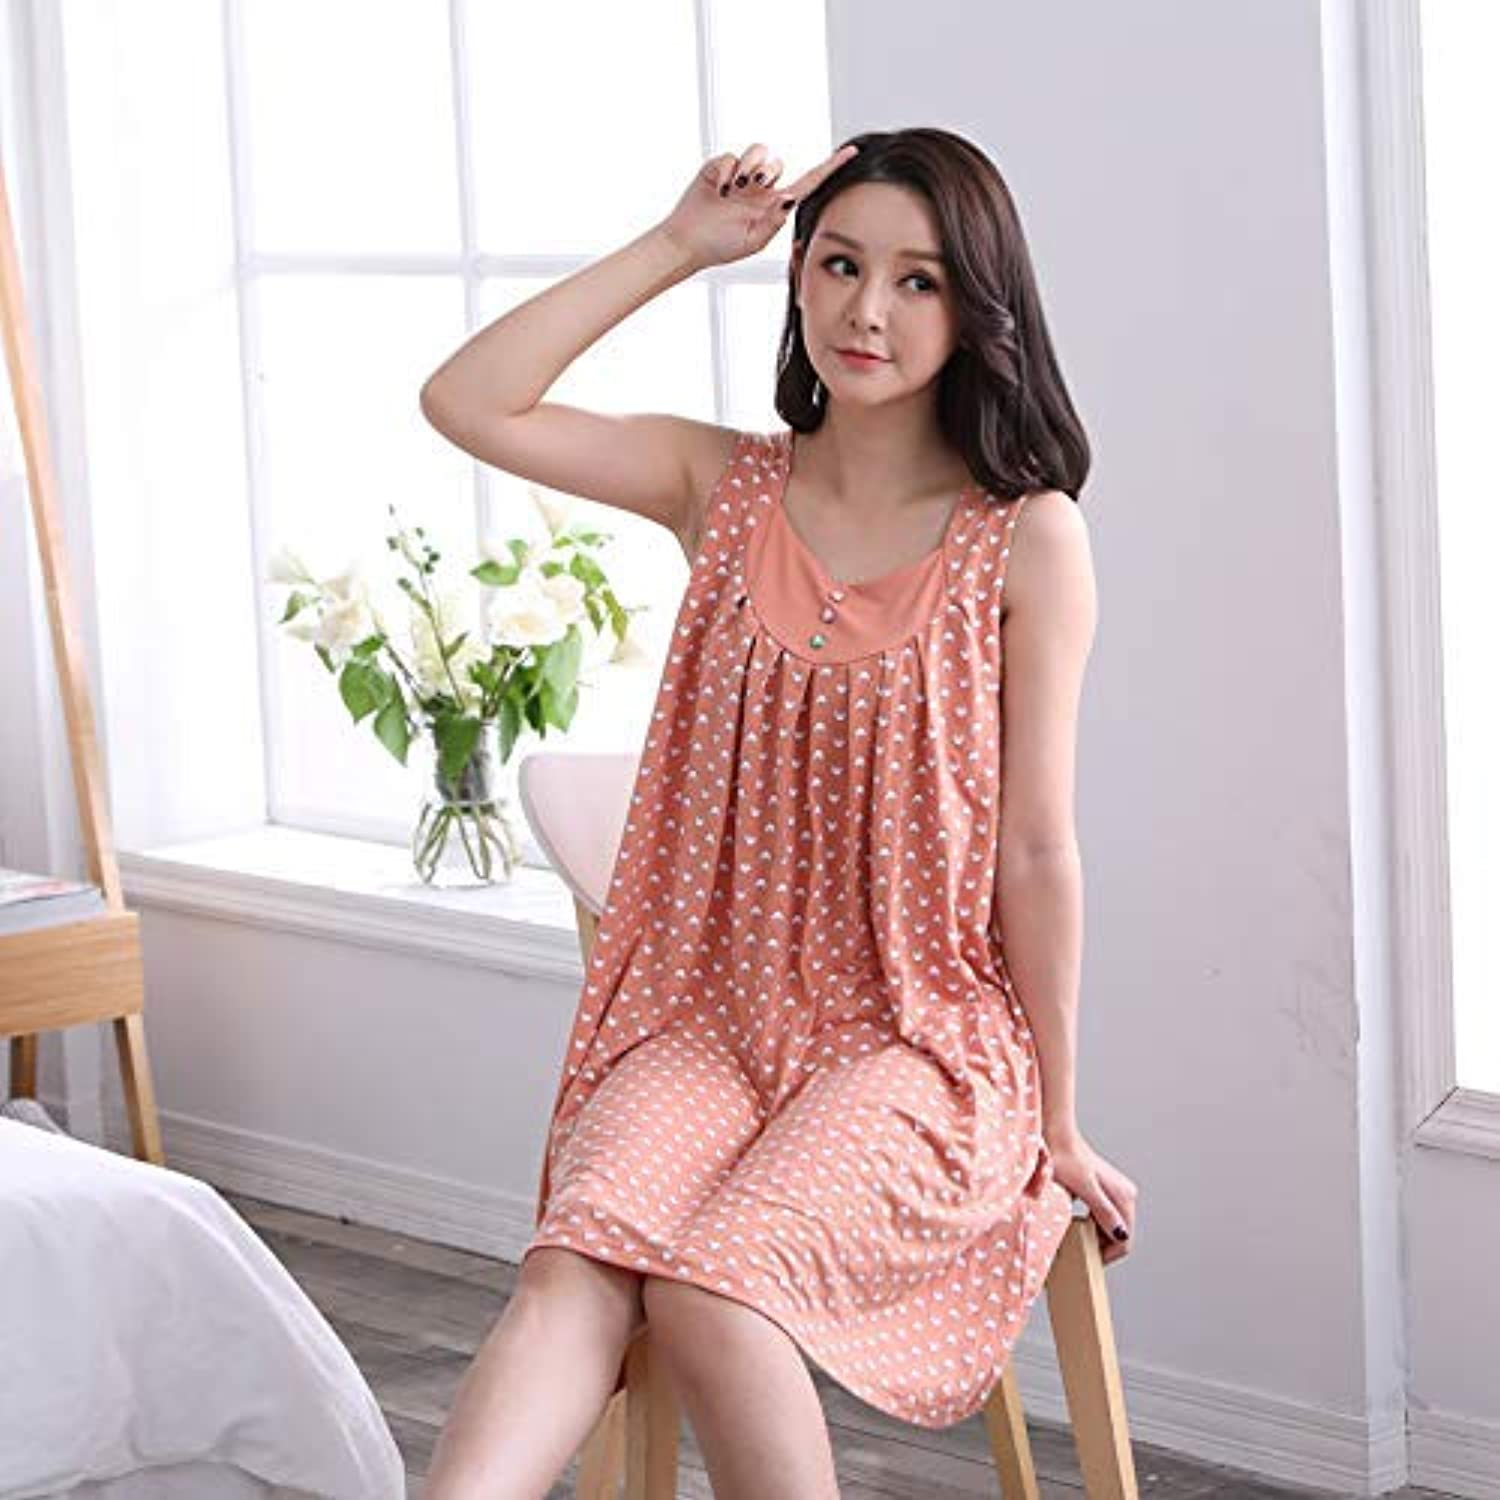 DALAI Summer Pajamas Middle-Aged Ladies Sleeveless Vest Nightdress Modal XL Fat mm can be Worn Outside Home Service (Size   L100130) (Size   L100130)